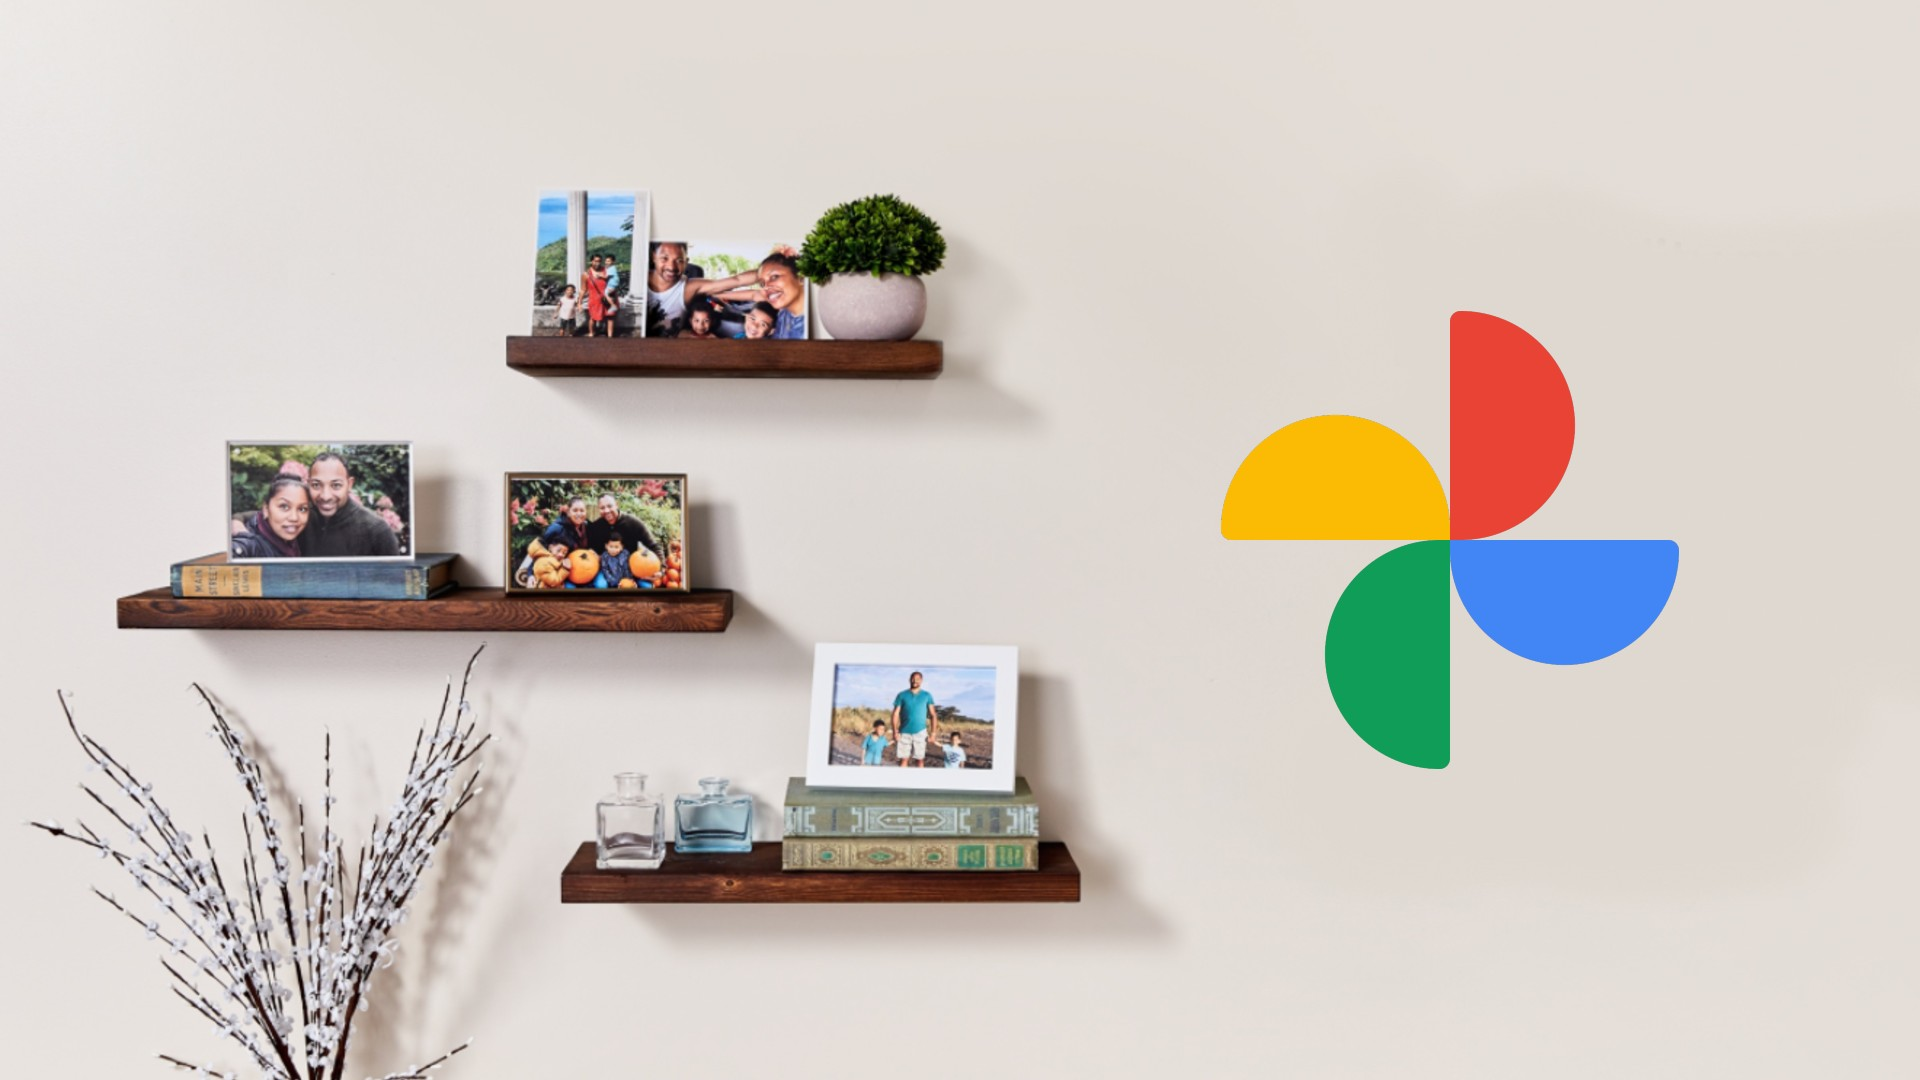 Google Photos revives its monthly print subscription service after implementing user feedback